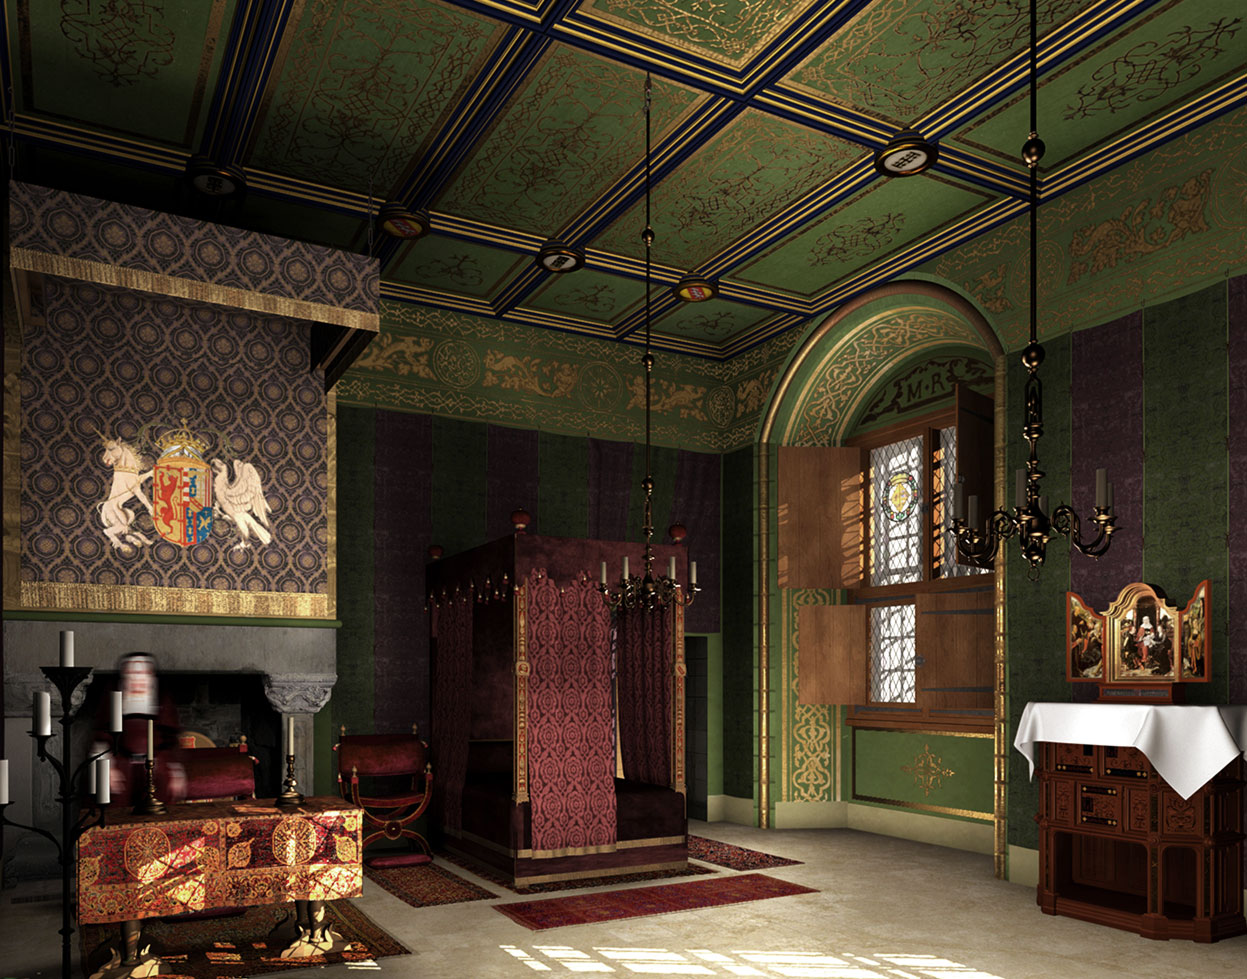 Bedchamber of Mary of Guise 1542